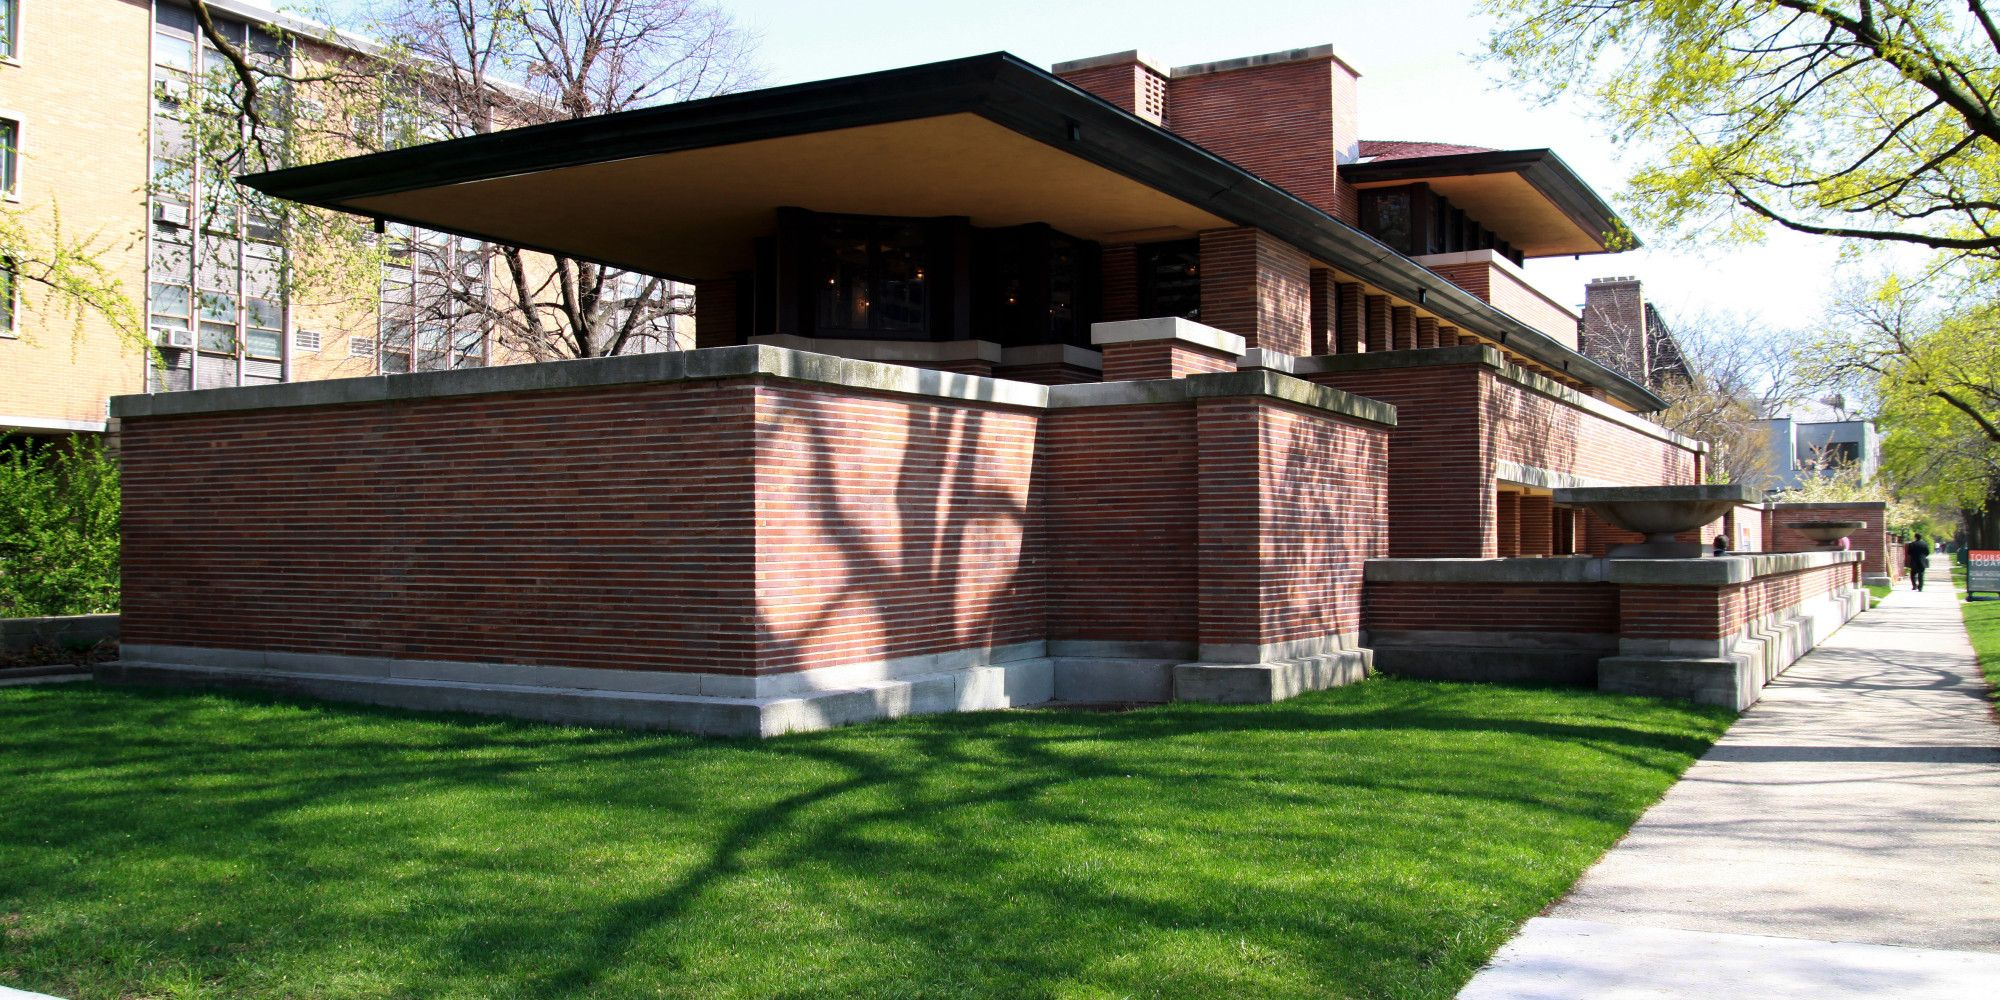 Robie House 5757 S Woodlawn Ave Chicago Il 1908 1910